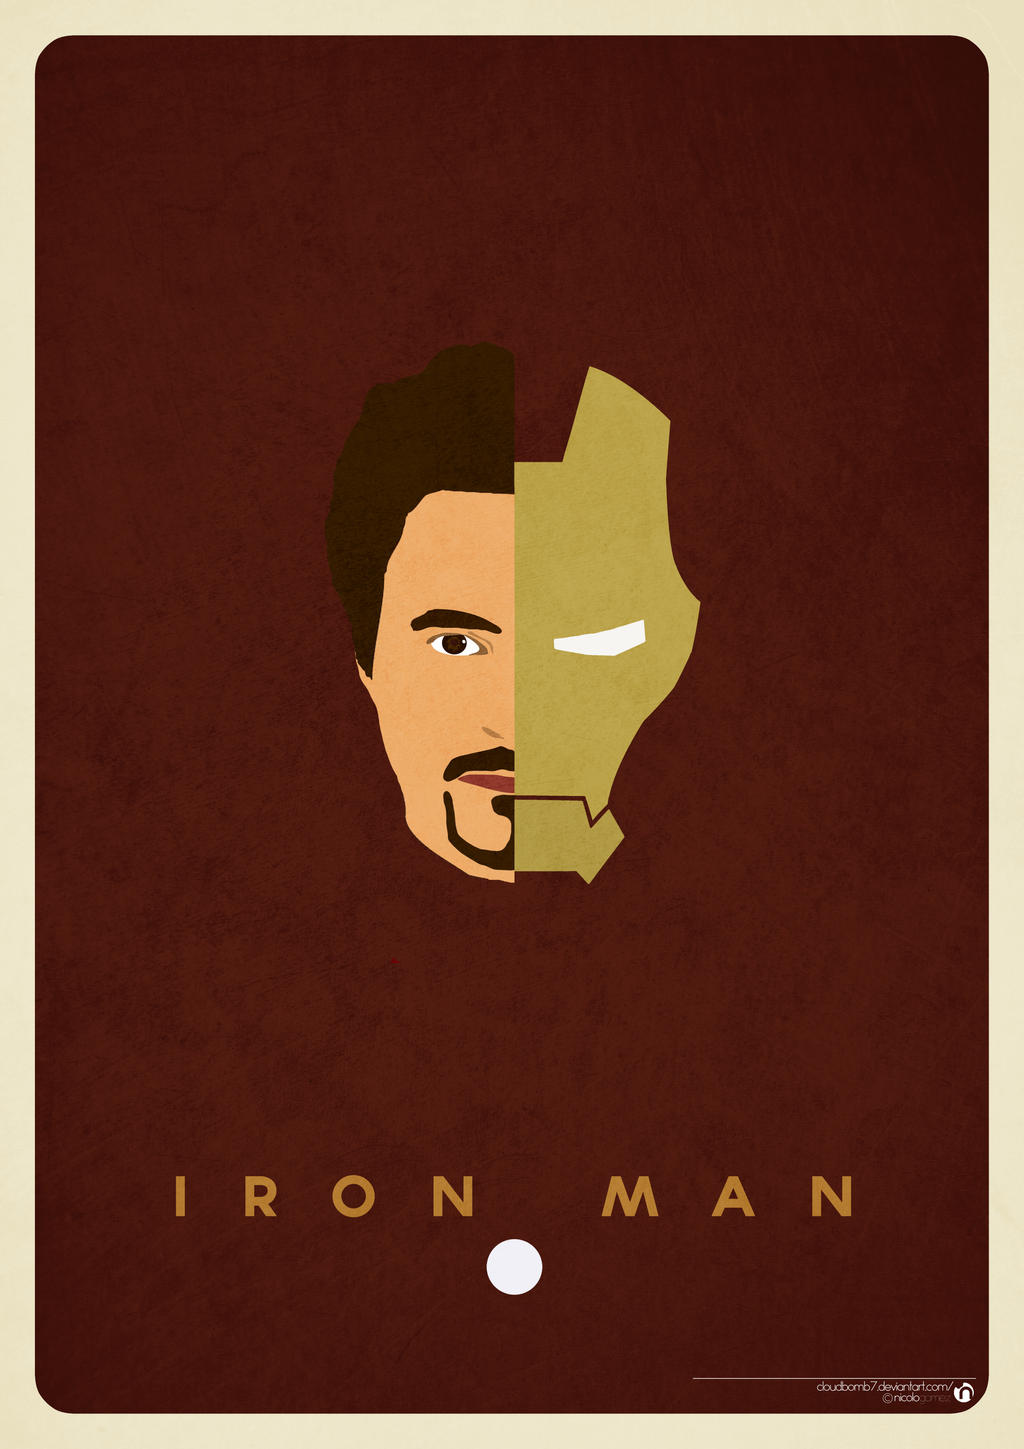 Minimalist ironman poster by cloudbomb7 on deviantart for Minimalist art pieces